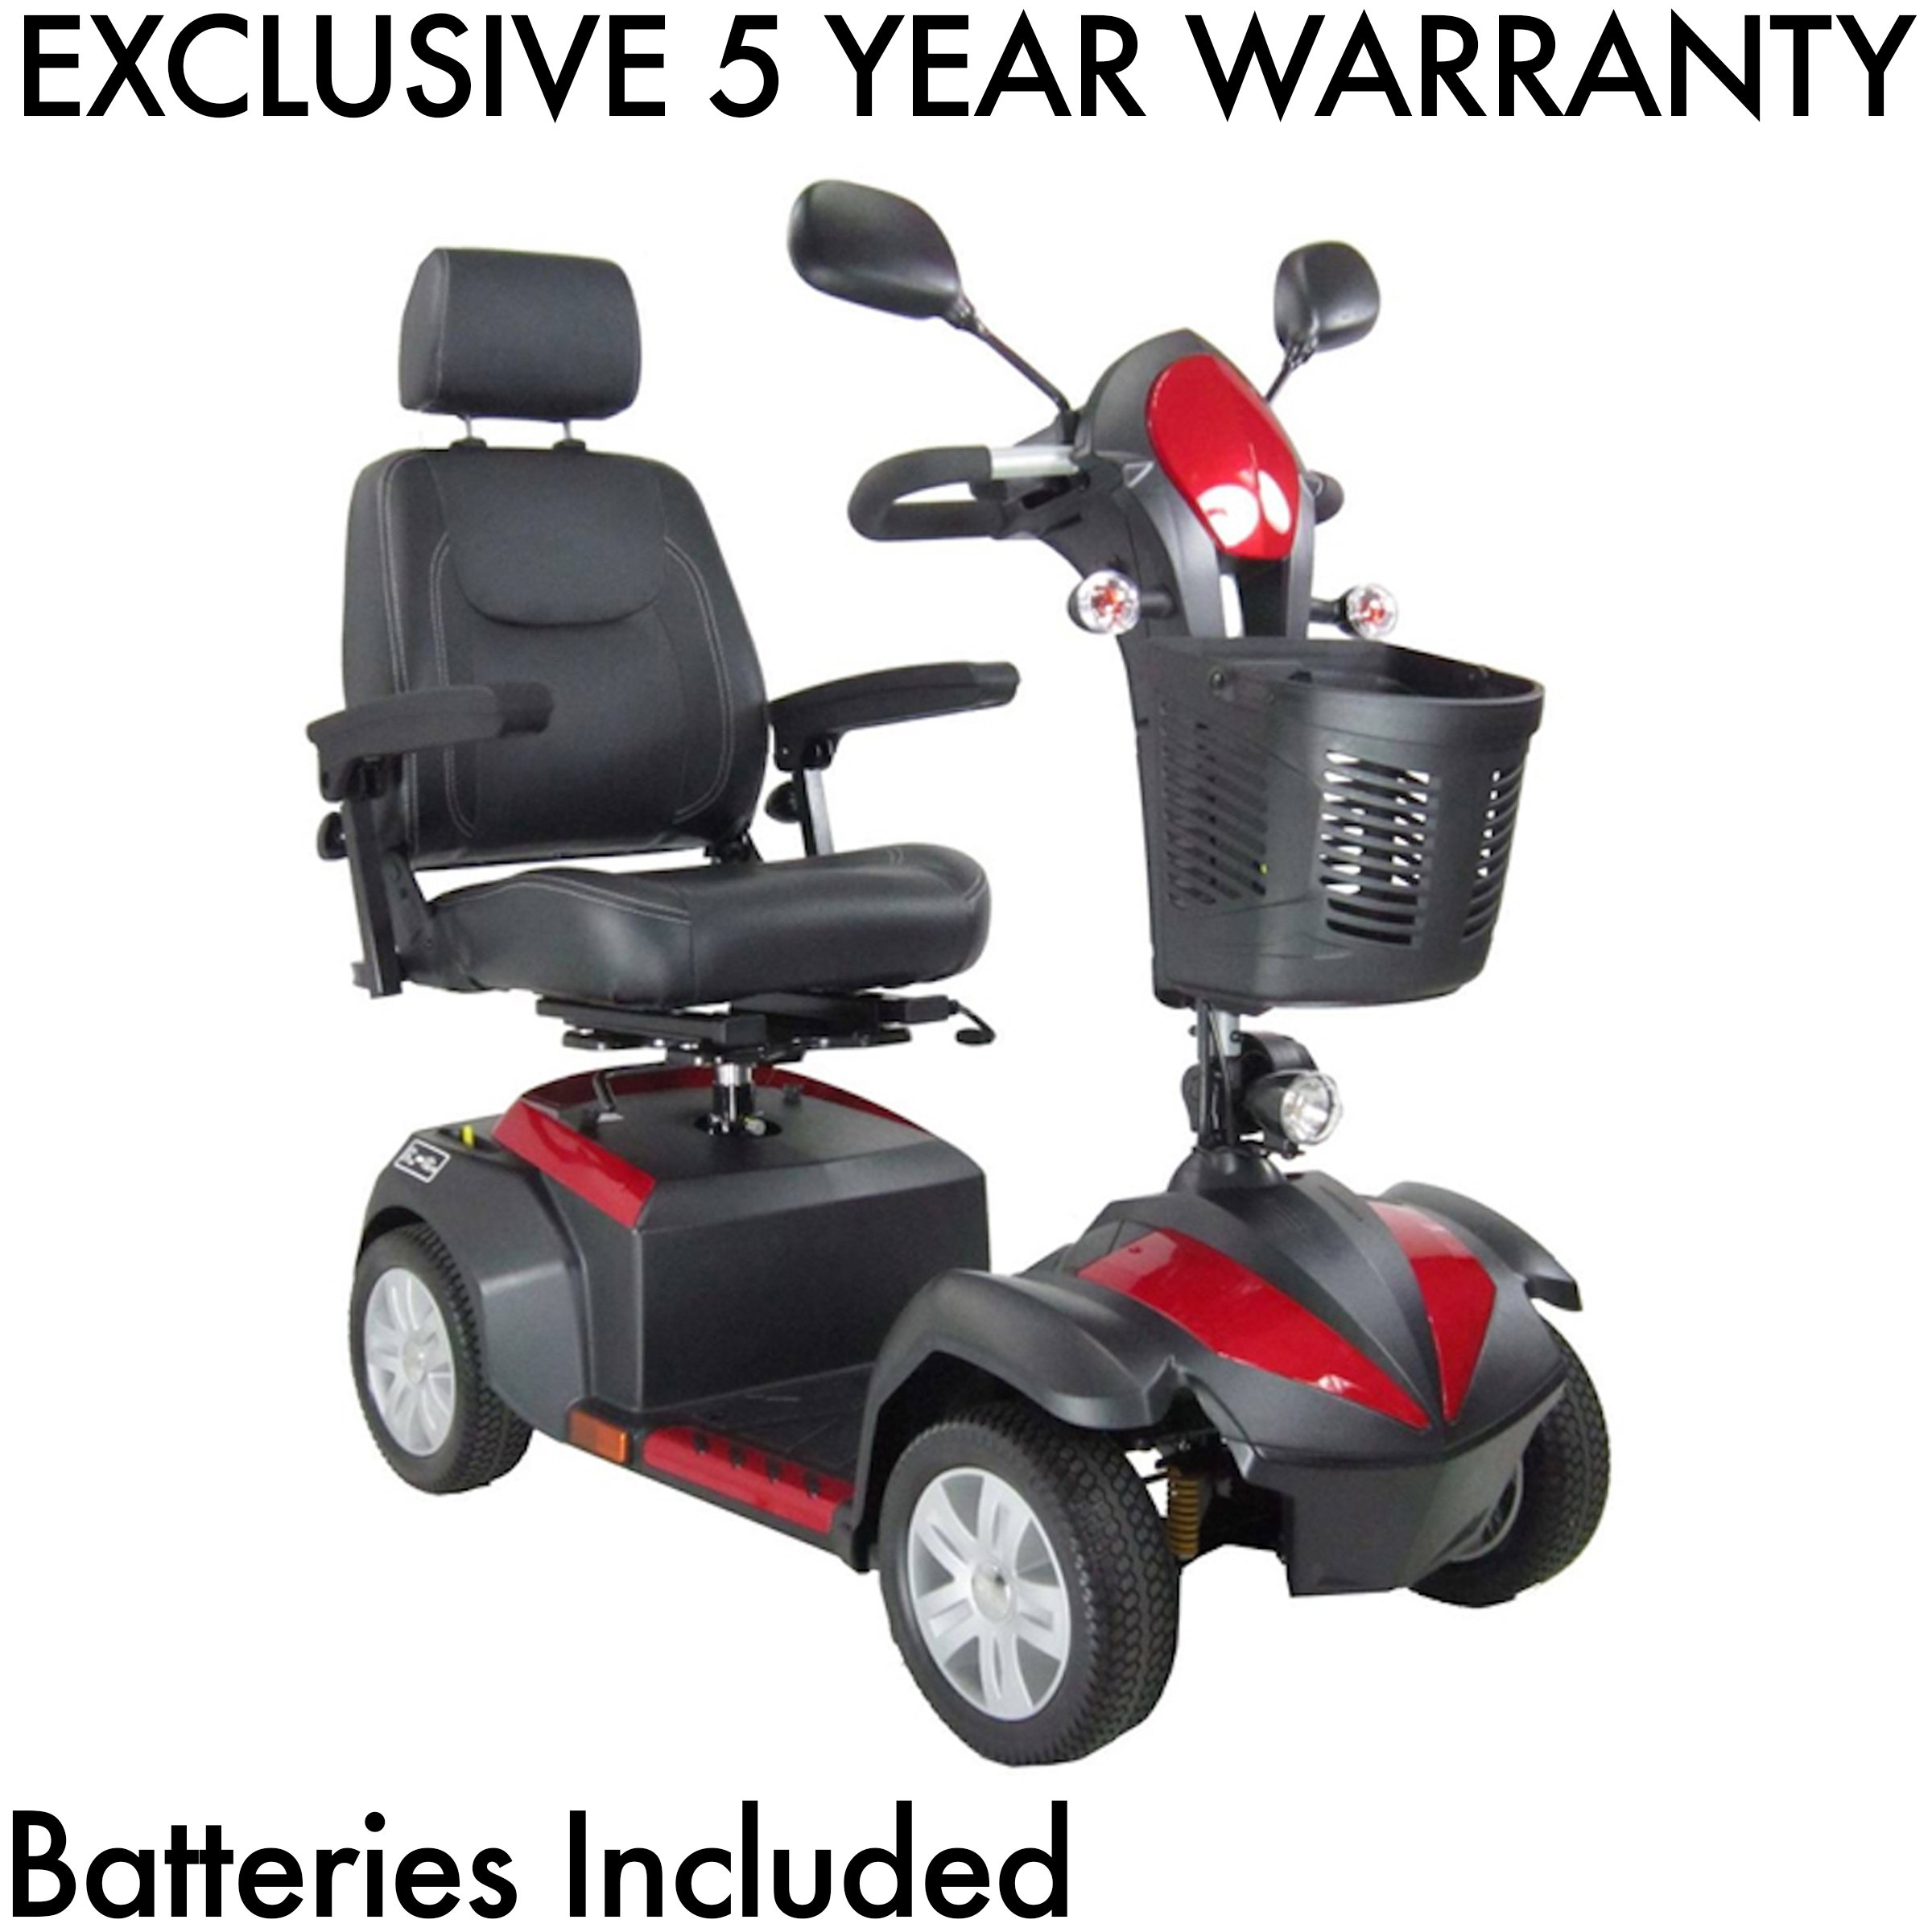 Drive Medical Ventura 4 Wheel DLX Scooter Includes 5 Year Protection Plan (20'' Captain's Seat)